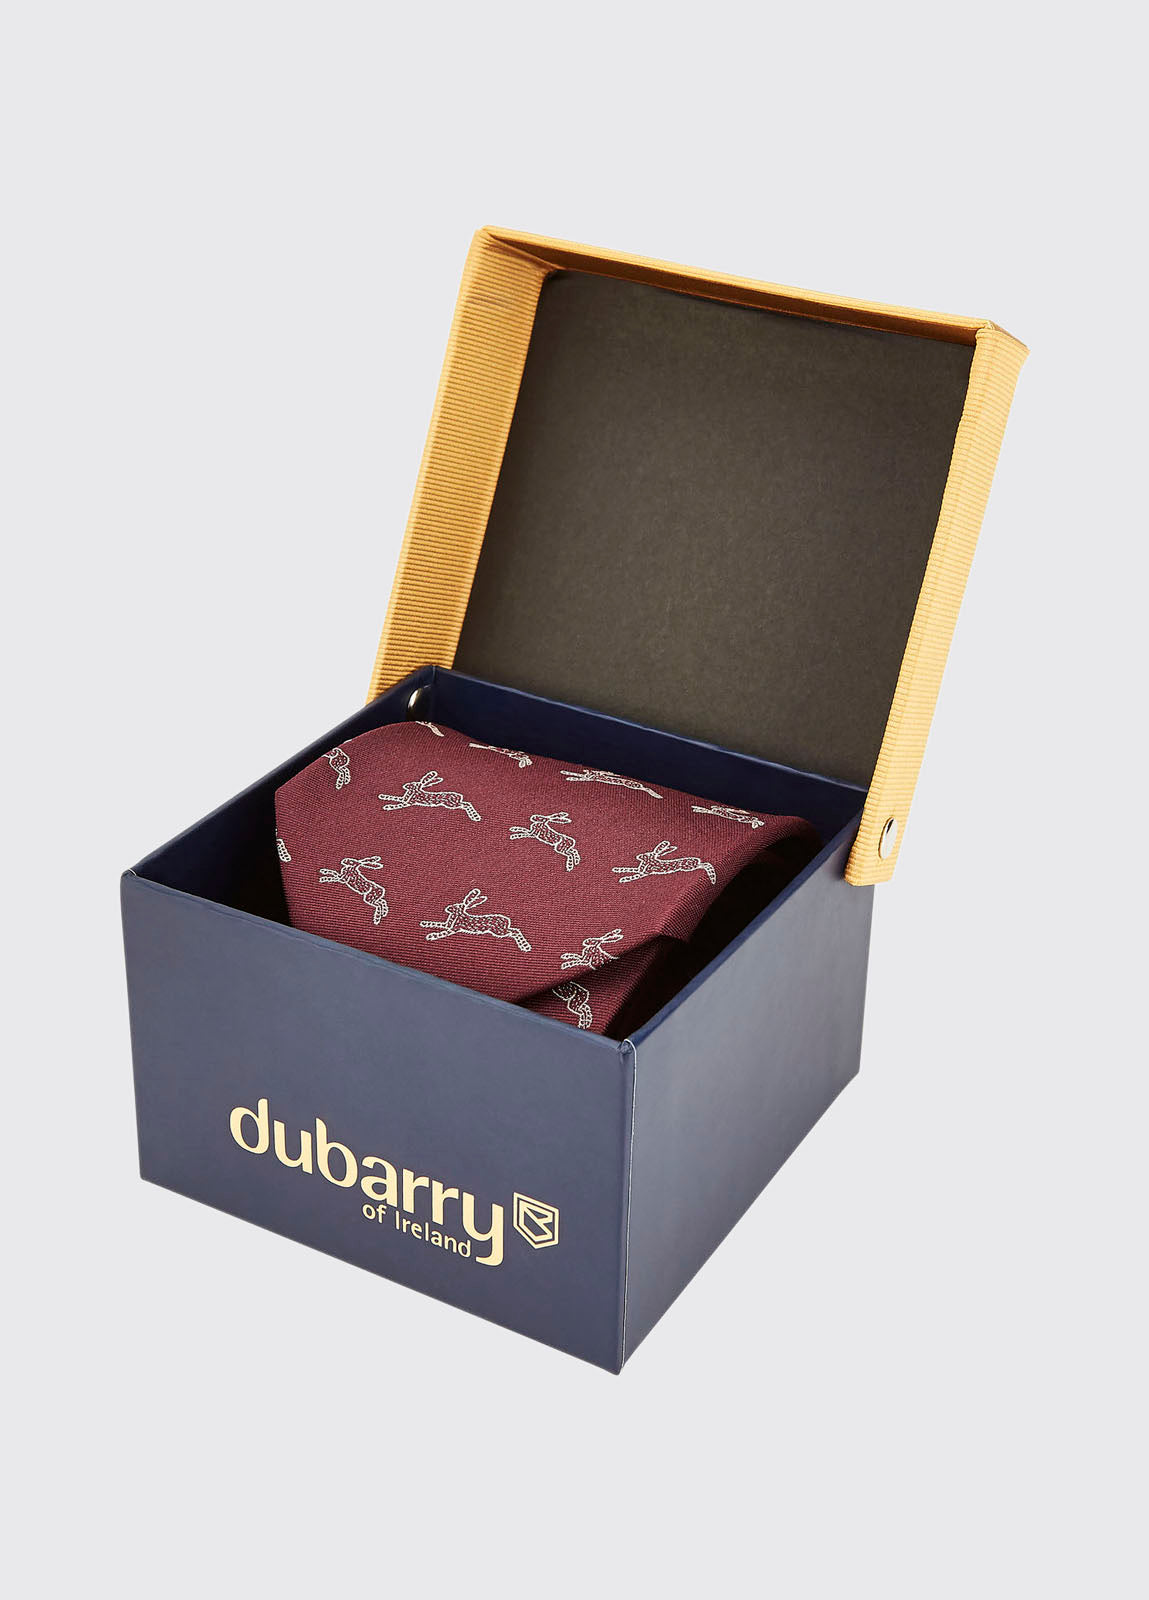 Dubarry Lacken Tie for Men in Merlot